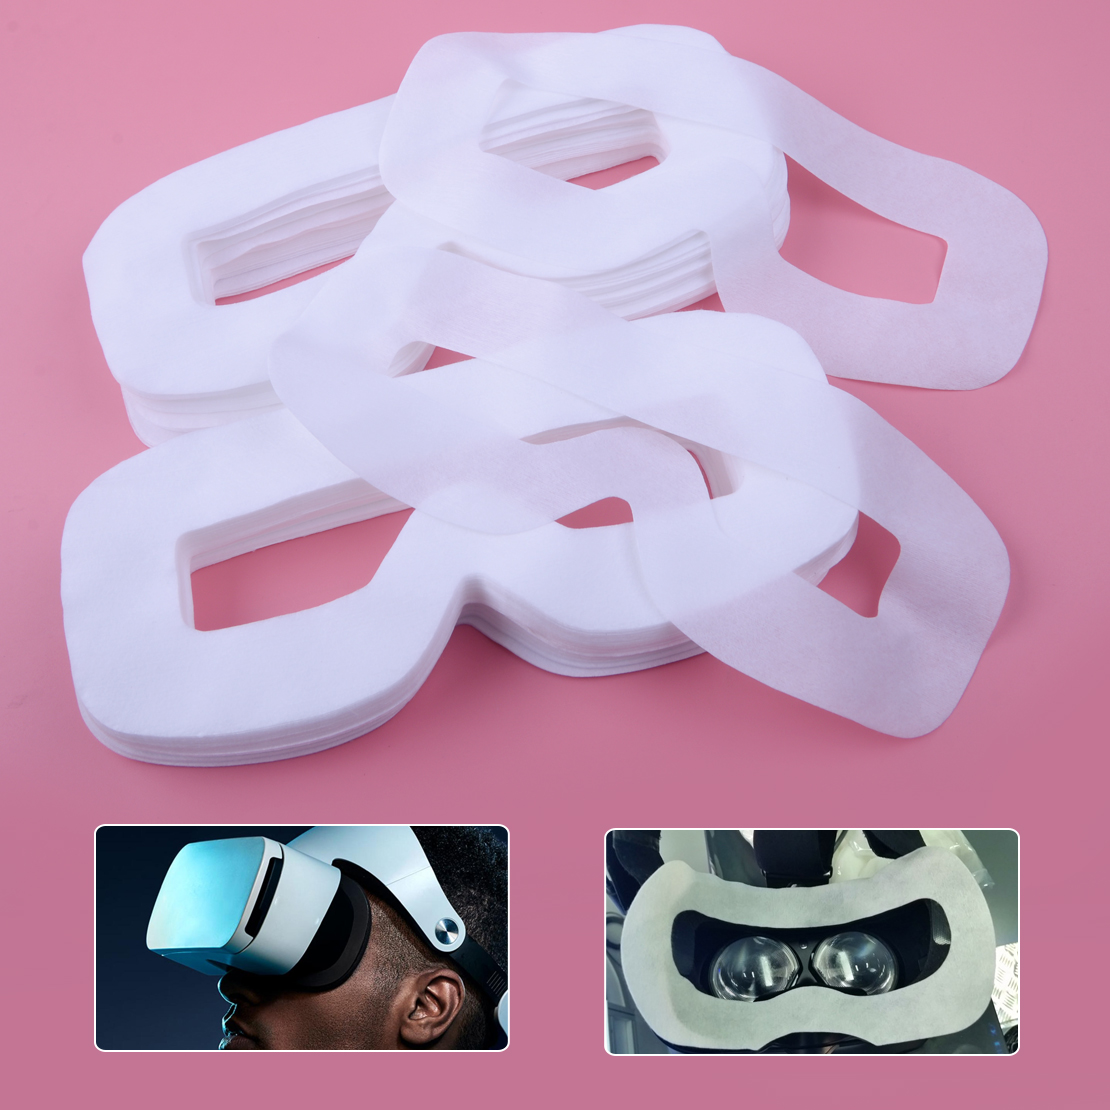 100pcs White Disposable Hygiene Eye Face Mask Patch Covers Non-woven Fabric Fit For HTC Vive PS VR Oculus Glasse100pcs White Disposable Hygiene Eye Face Mask Patch Covers Non-woven Fabric Fit For HTC Vive PS VR Oculus Glasse